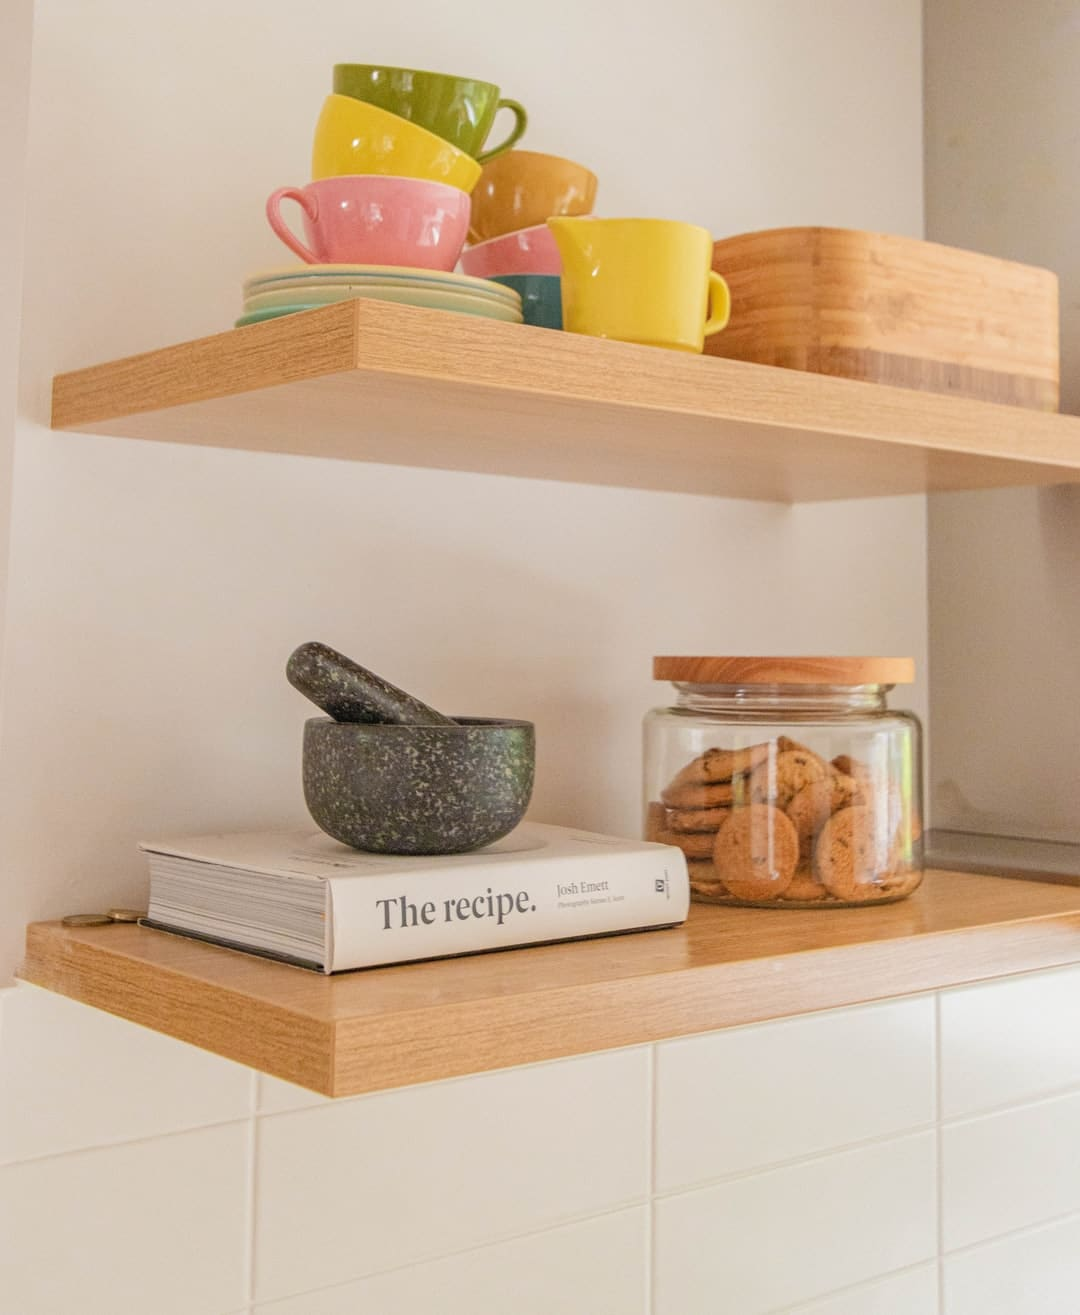 Create more stylish storage with these easy DIY shelves